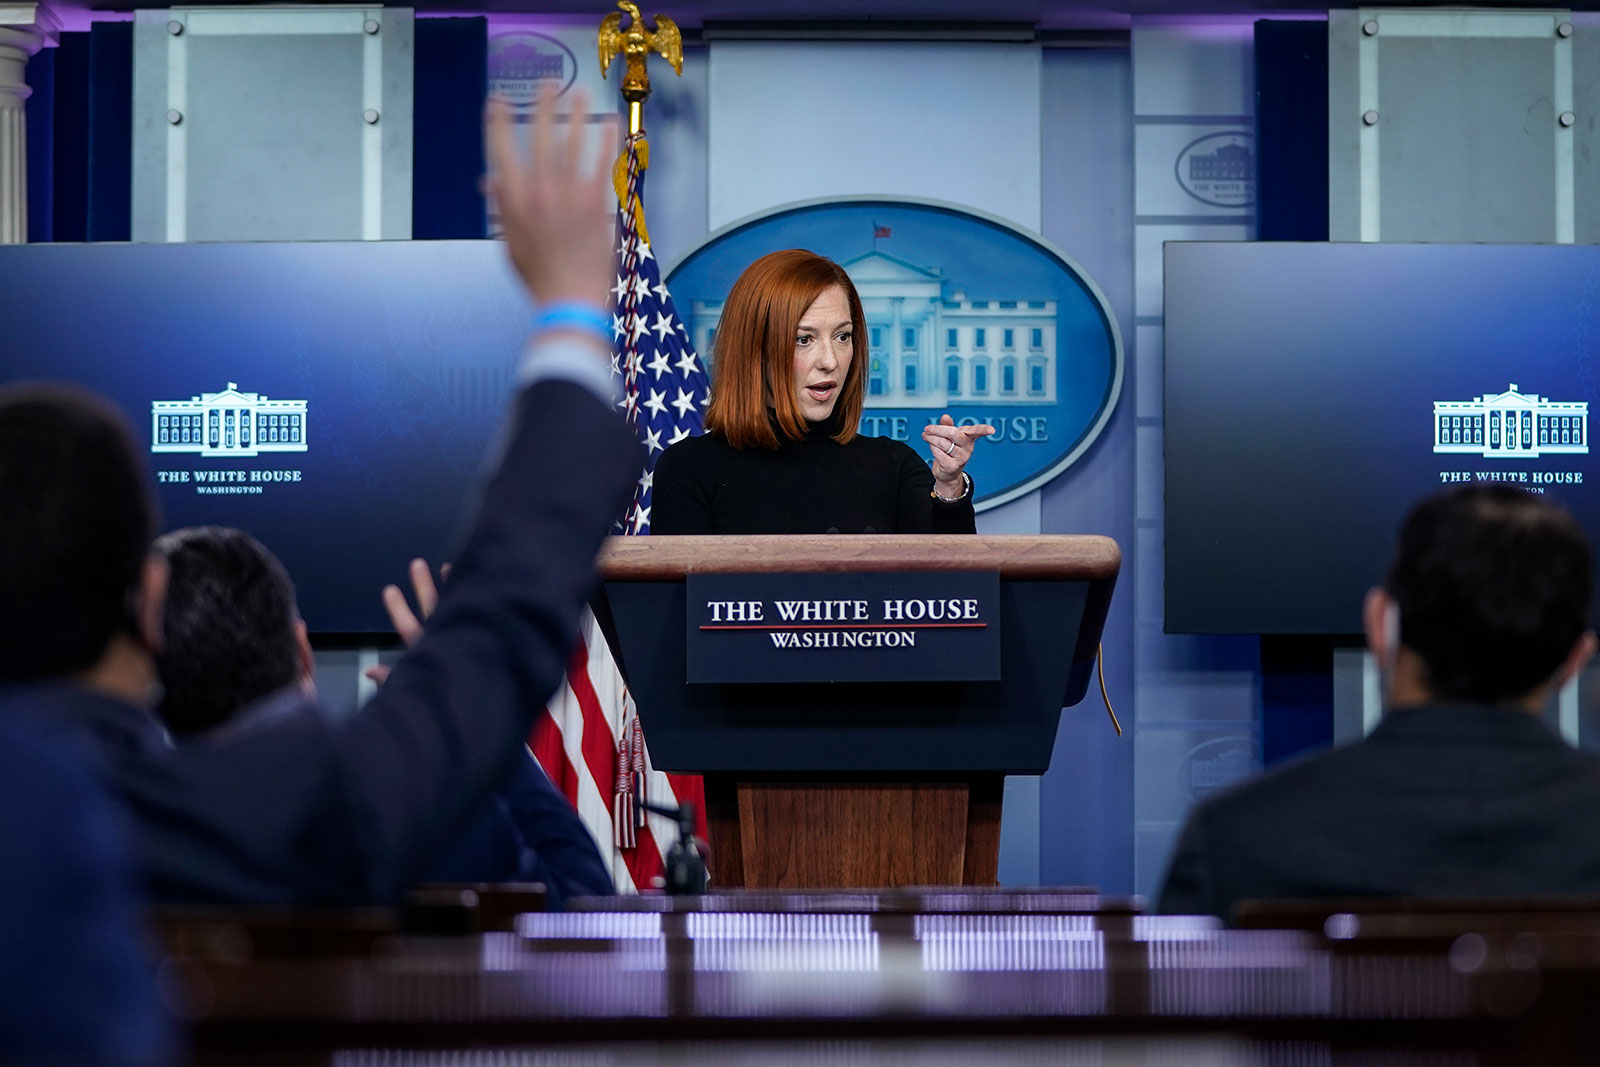 White House press secretary Jen Psakispeaks during a press briefing at the White House on February 16.